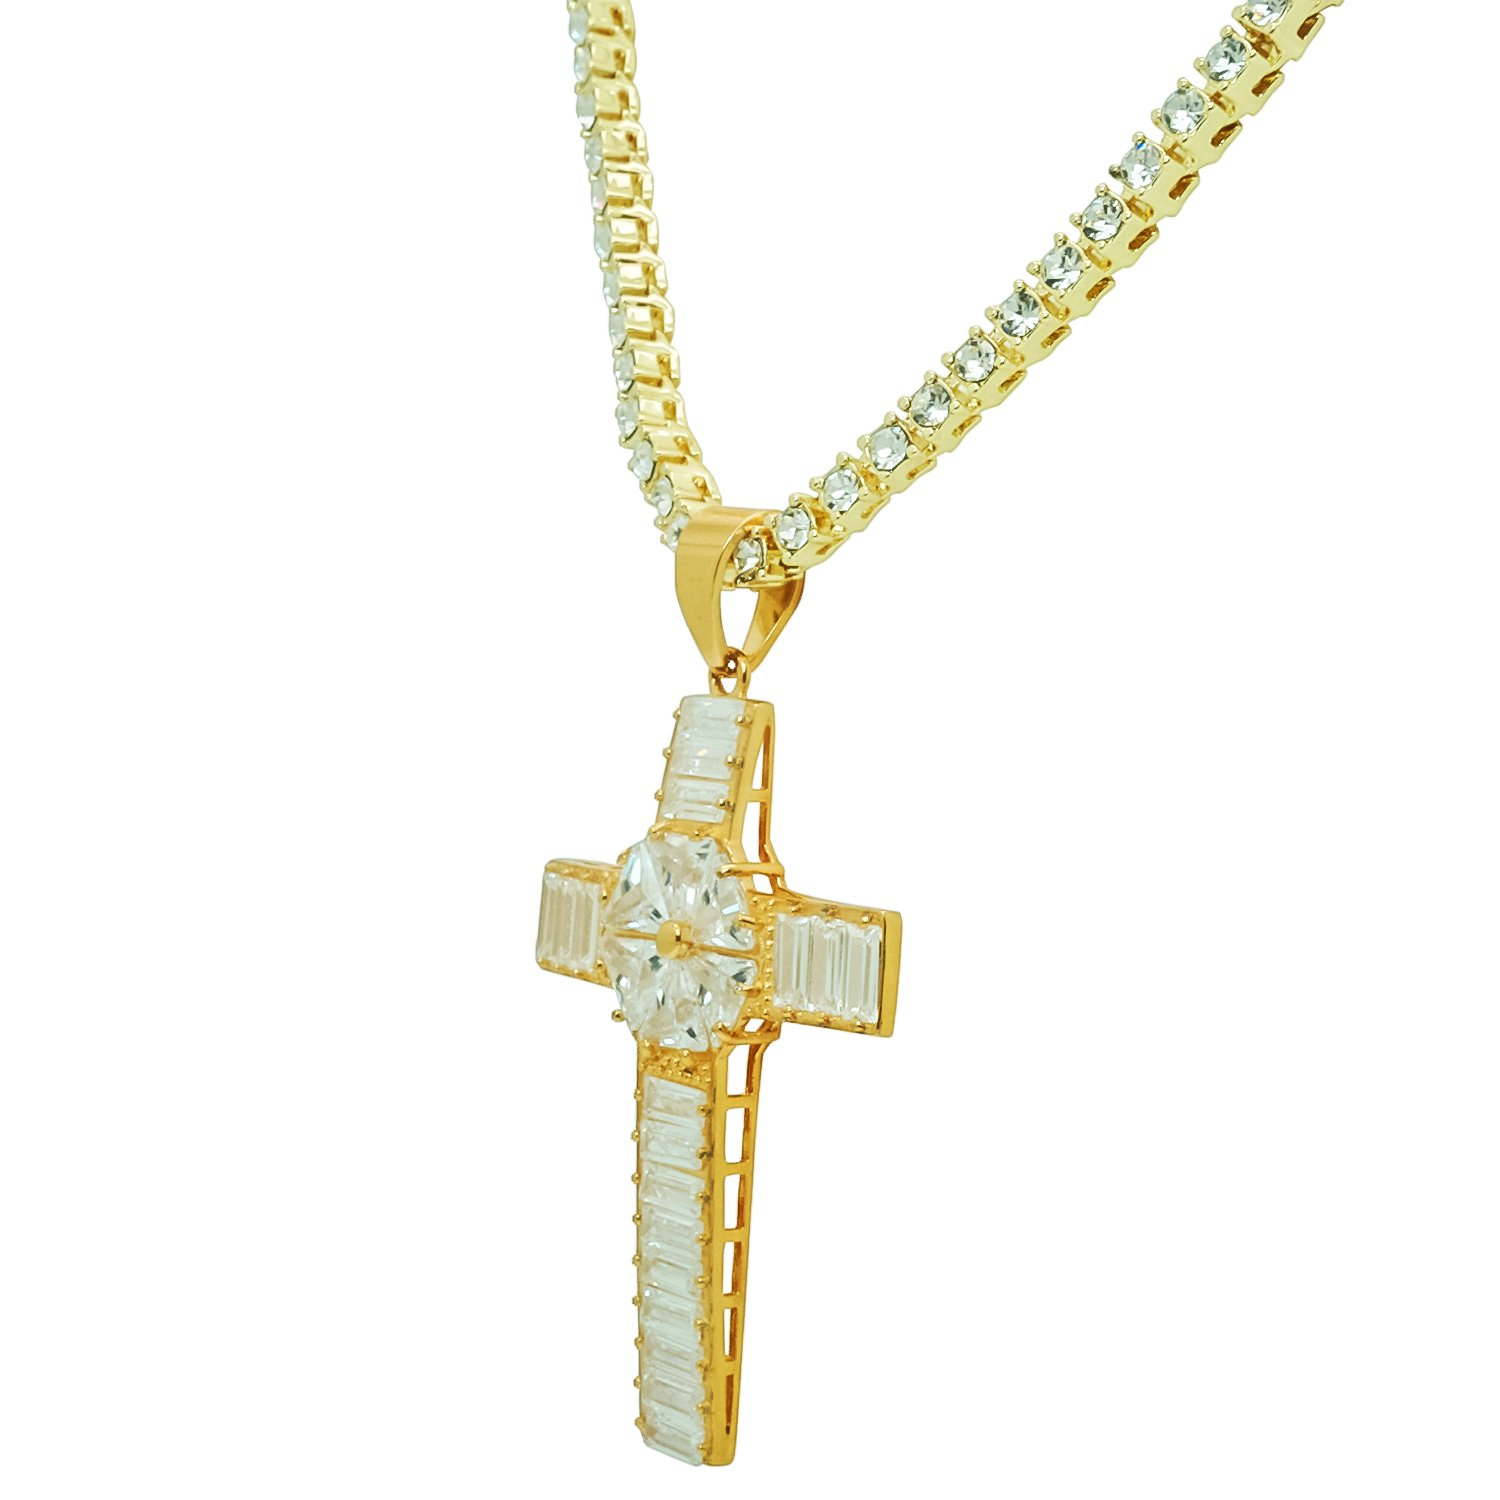 Stainless Steel Yellow Gold-Tone Iced Out Hip Hop Bling 3D Baguette Stone Star Cross Pendant With 1 Row Stone Tennis Chain 24 Necklace Choker Chain